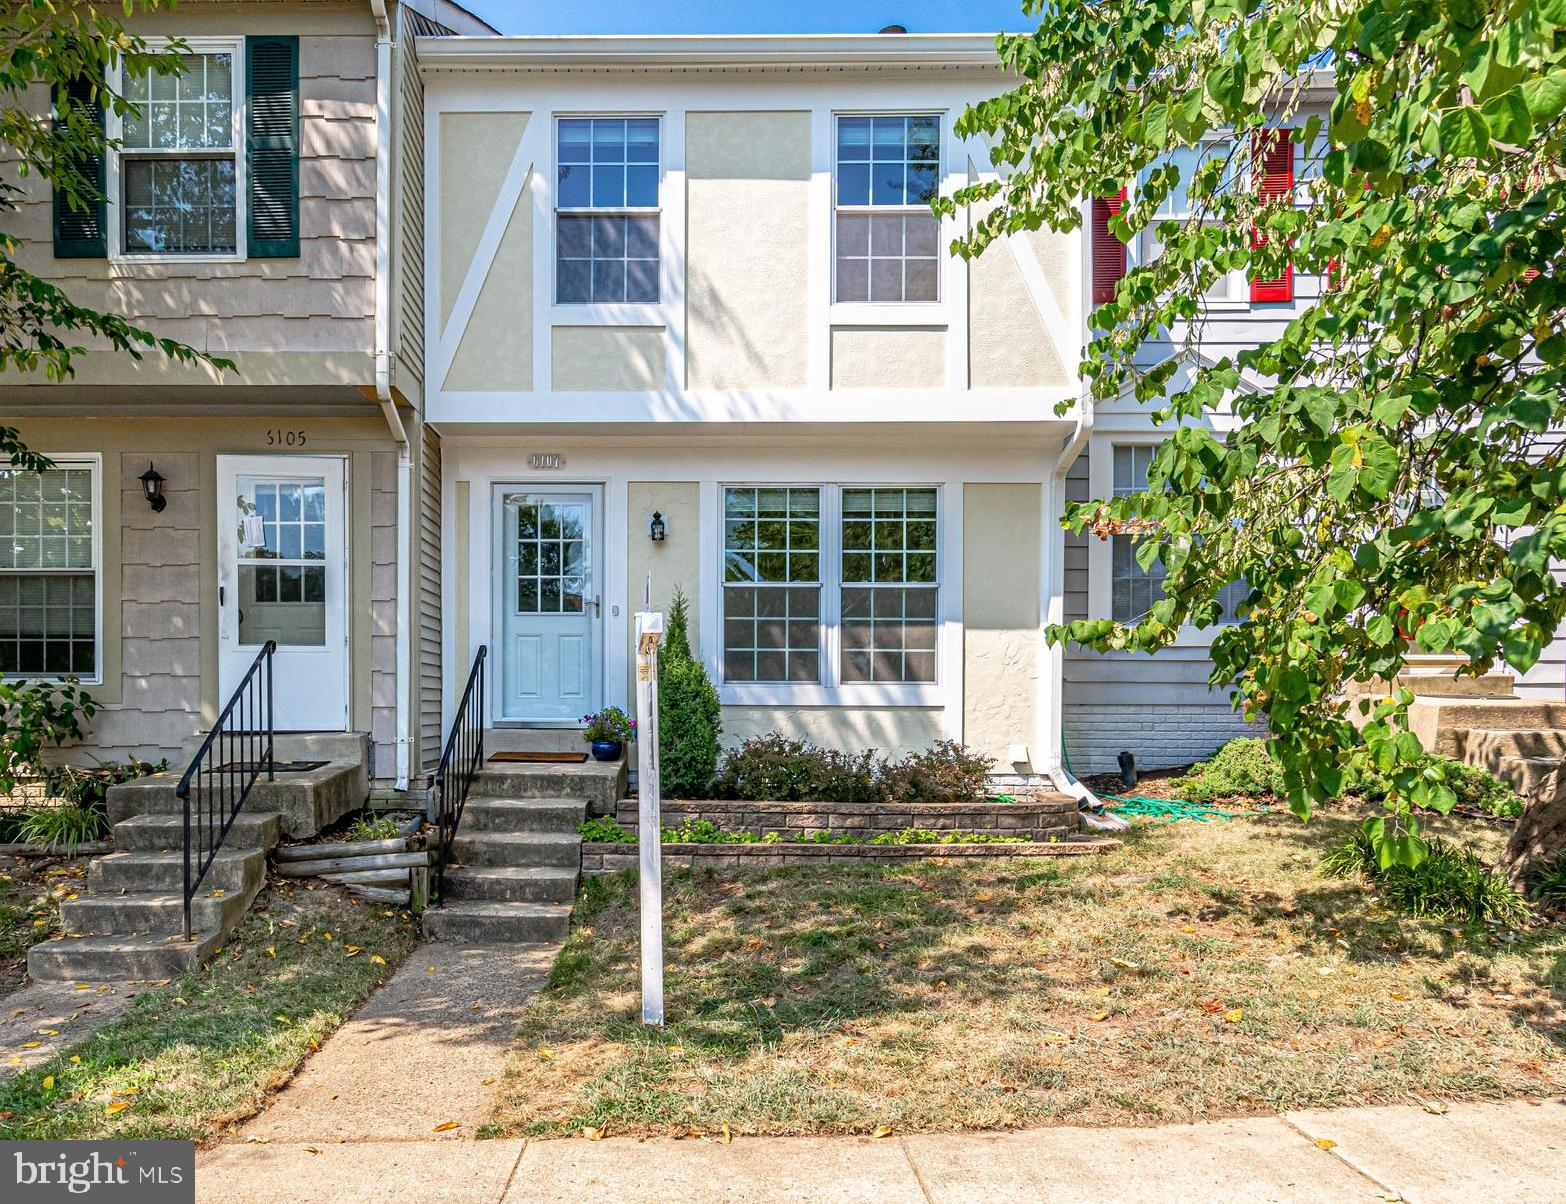 *JUST LISTED*  Ideal location close to all commuter routes, Ft. Belvoir, shopping and restaurants in coveted Kingstowne.  Meticulously maintained 3-level townhouse features 2 bedrooms, 1 full and 2 half bathrooms. Upgrades galore allow new owner to move right in and enjoy the rest of summer with all the amenities this area has to offer.  Hardwood floors (first level and upper staircase), newer windows, newer roof, newer gutters, granite counter tops, quality SS appliances, deck, finished basement leading to fenced private patio, freshly painted main and top floor in neutral colors, alarm system, reserved parking spot #4.  Welcome Home! Open House Saturday 12:00 PM - 2:00 PM and on Sunday 2:00 PM - 4:00 PM